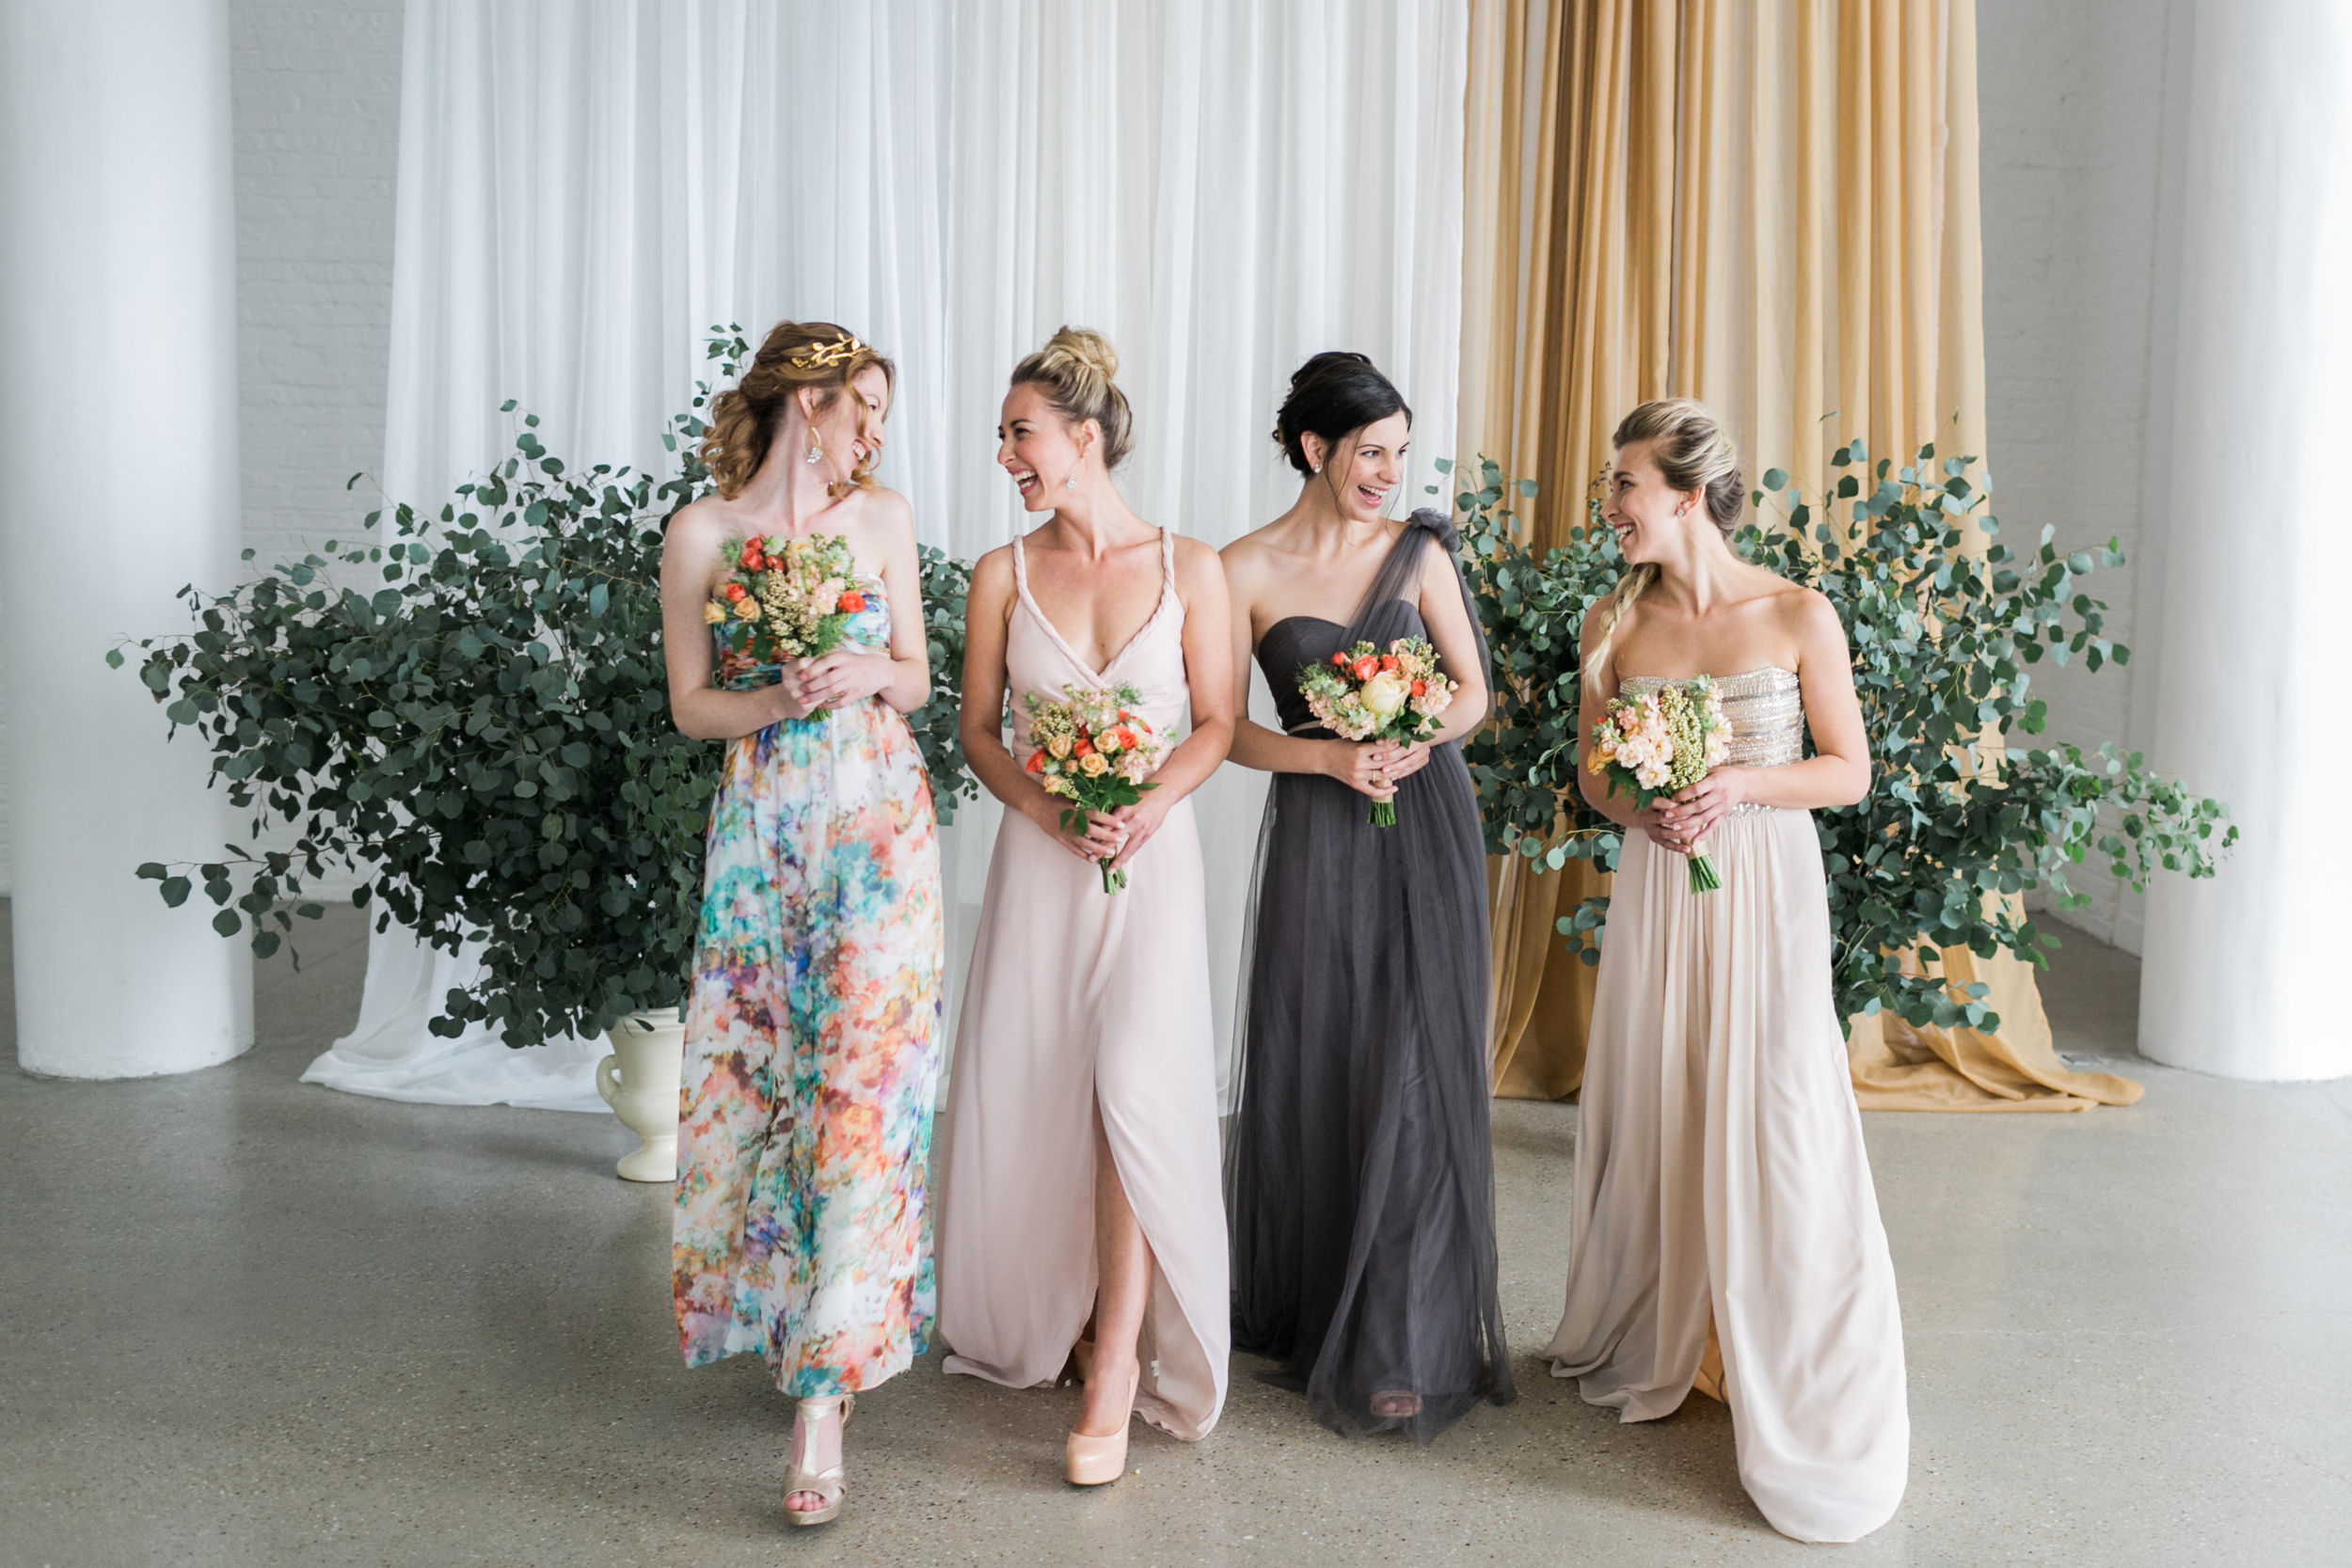 Aisle Society | The best wedding inspiration, all in one place